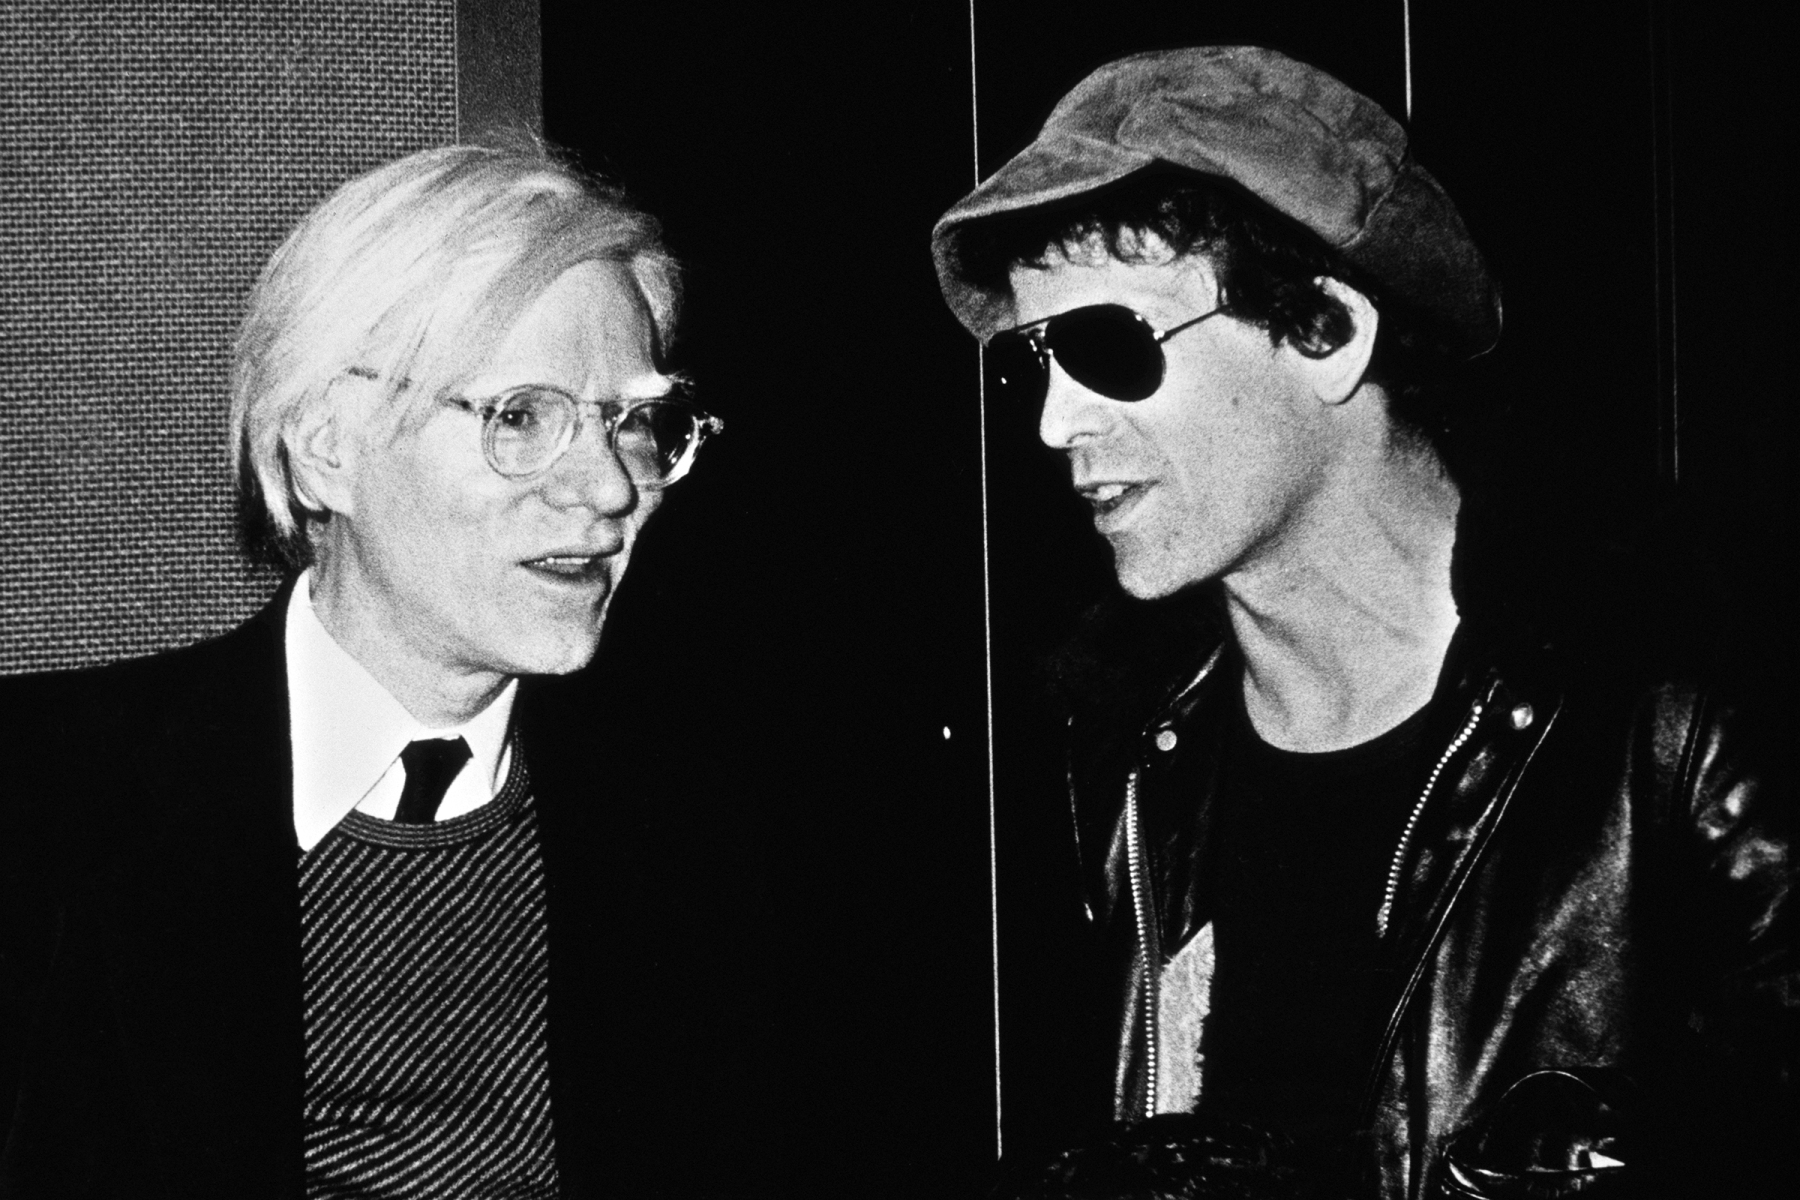 American pop artist Andy Warhol (1928 - 1987, left) with singer-songwriter Lou Reed (1942 - 2013), circa 1980. (Photo by Richard E. Aaron/Redferns/Getty Images)